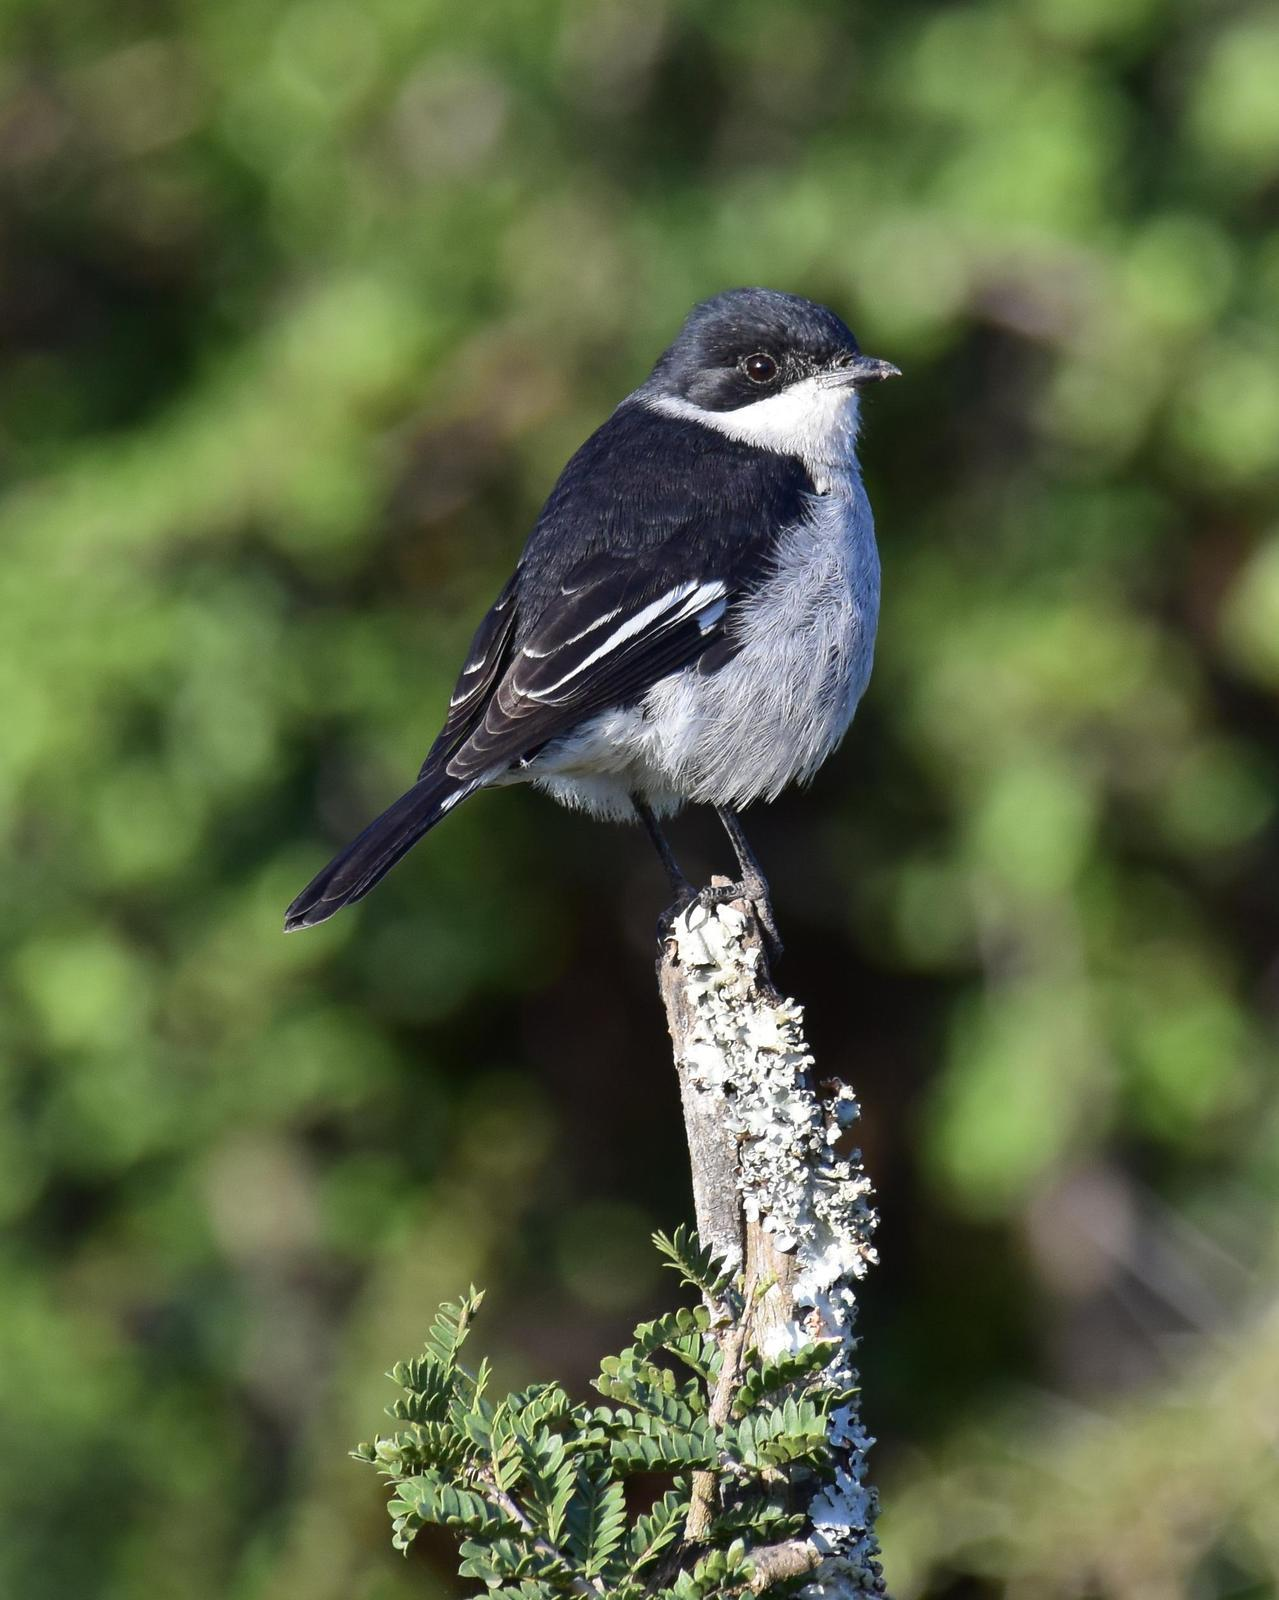 Fiscal Flycatcher Photo by Steve Percival